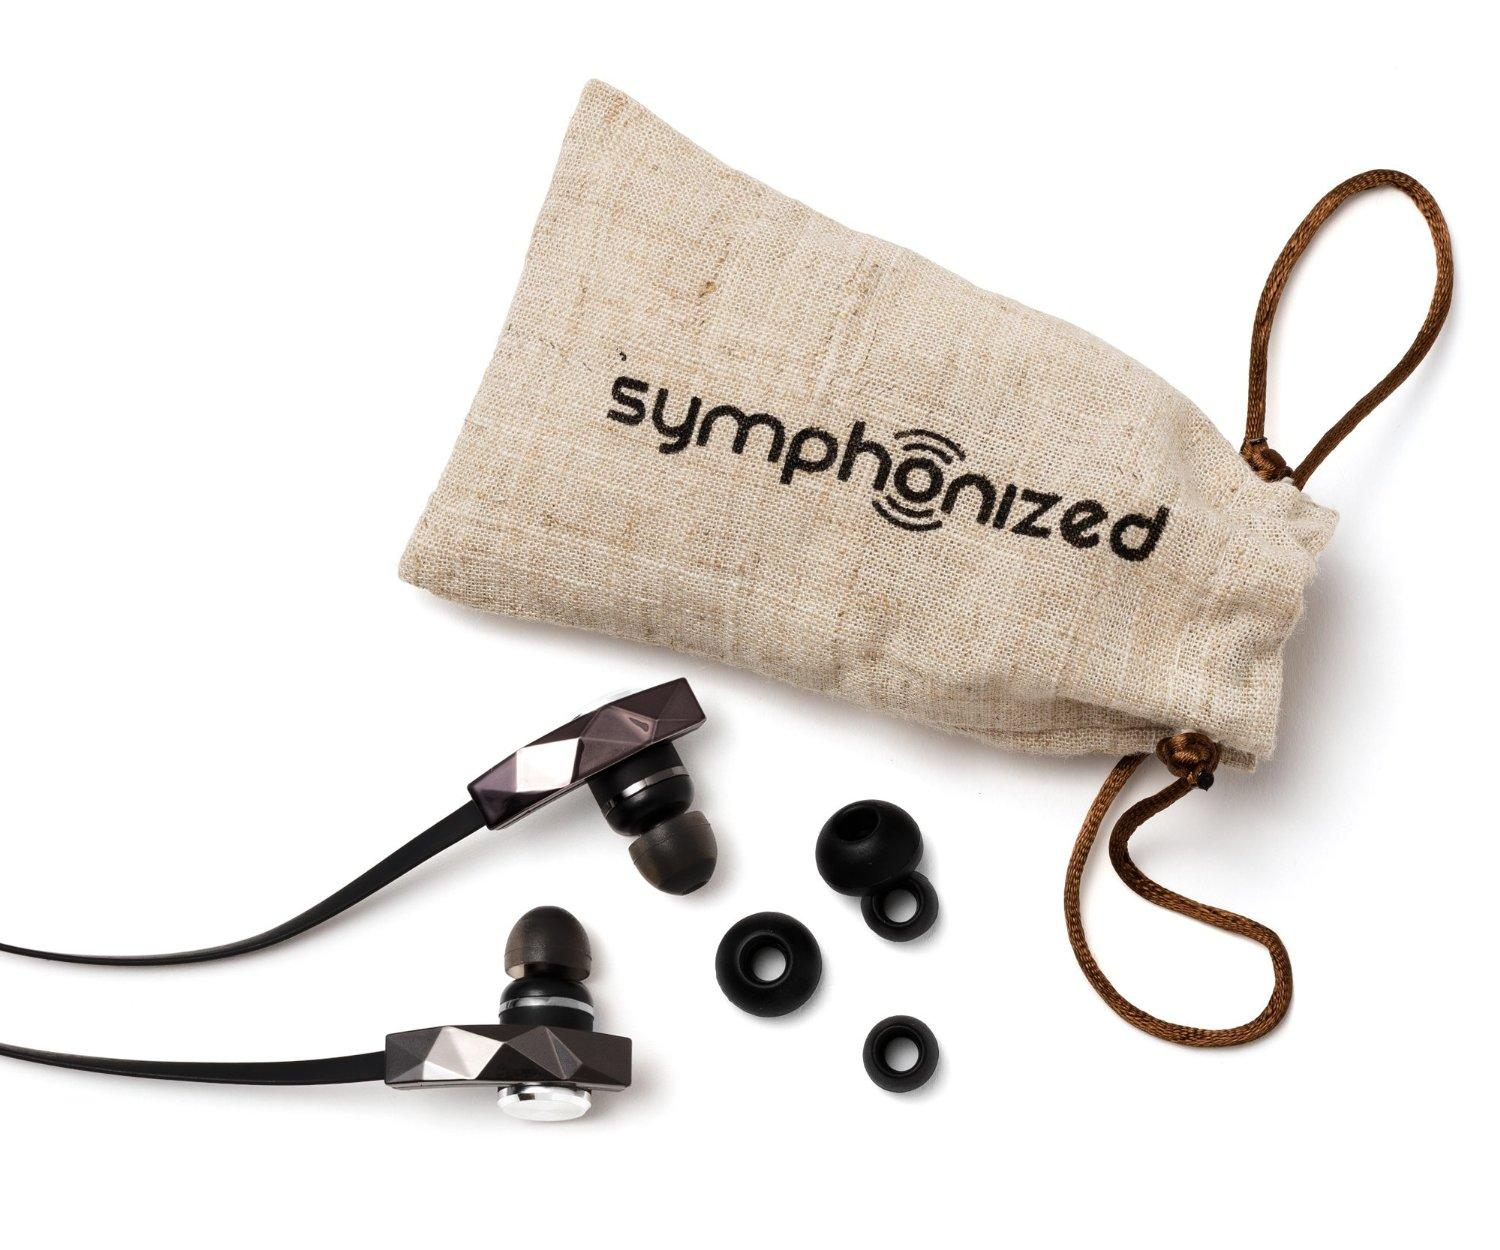 Symphonized PRO Premium In-ear Noise-isolating Earphones|Earbuds|Headphones with Flat Cable and Microphone